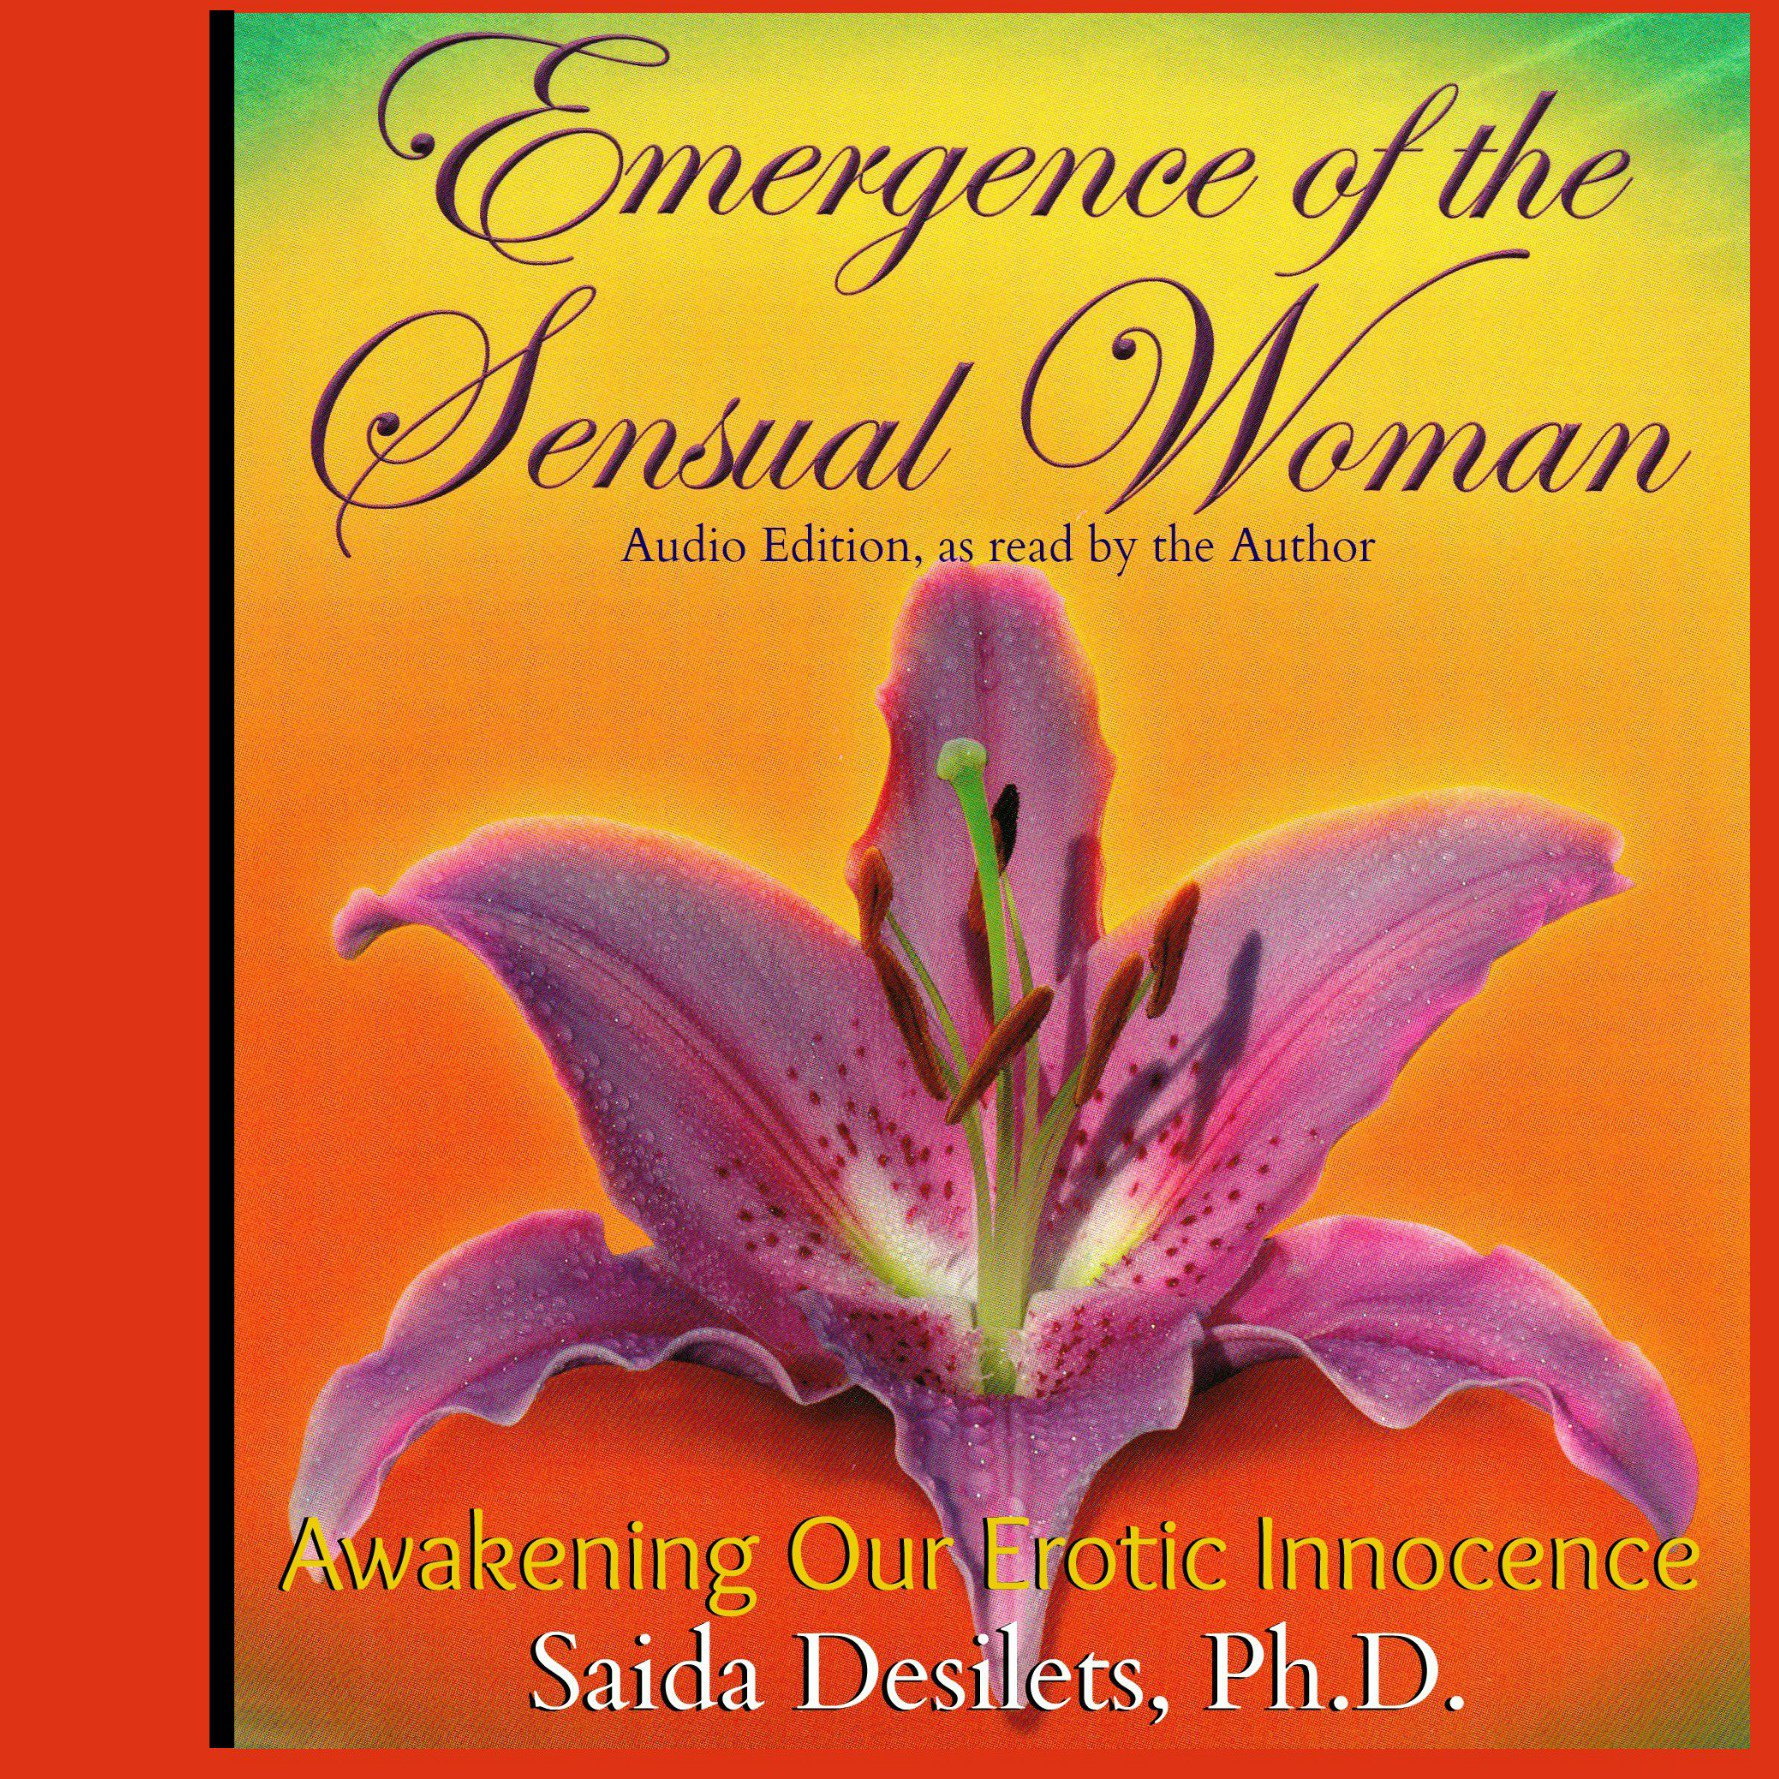 Image OfEmergence Of The Sensual Woman: Awakening Our Erotic Innocence